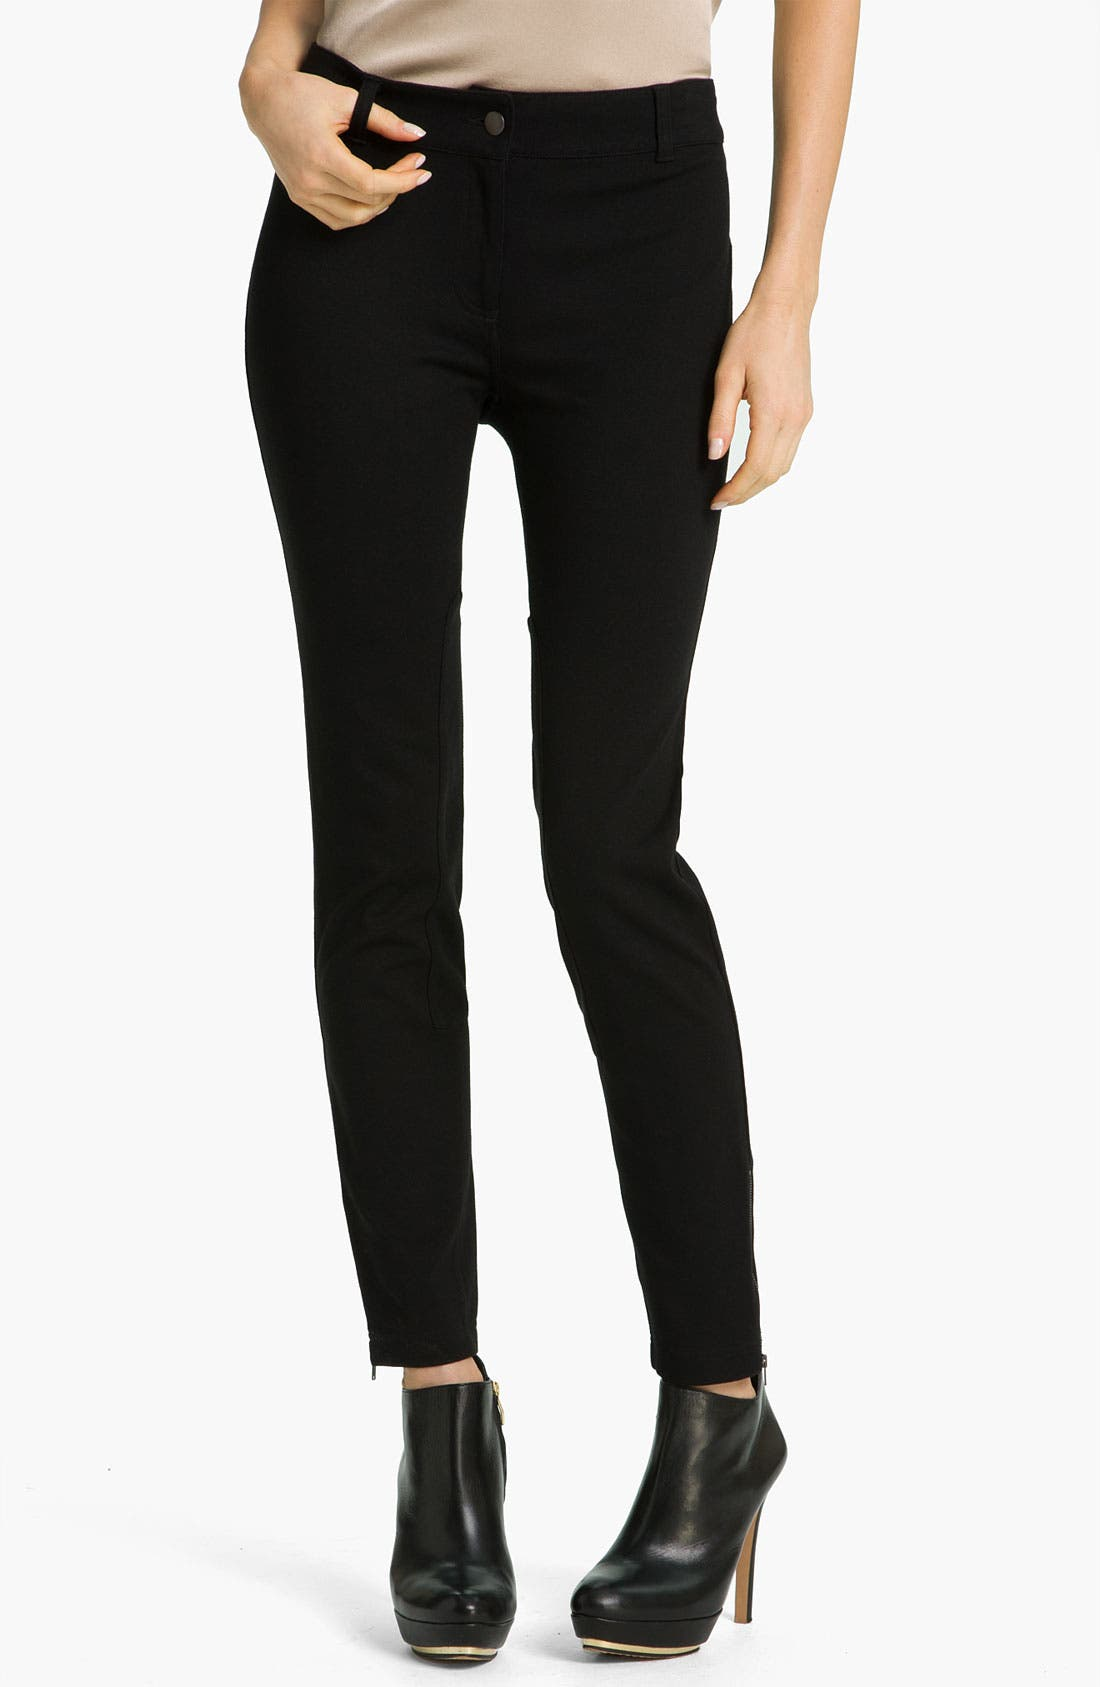 Alternate Image 1 Selected - Eileen Fisher Riding Pants